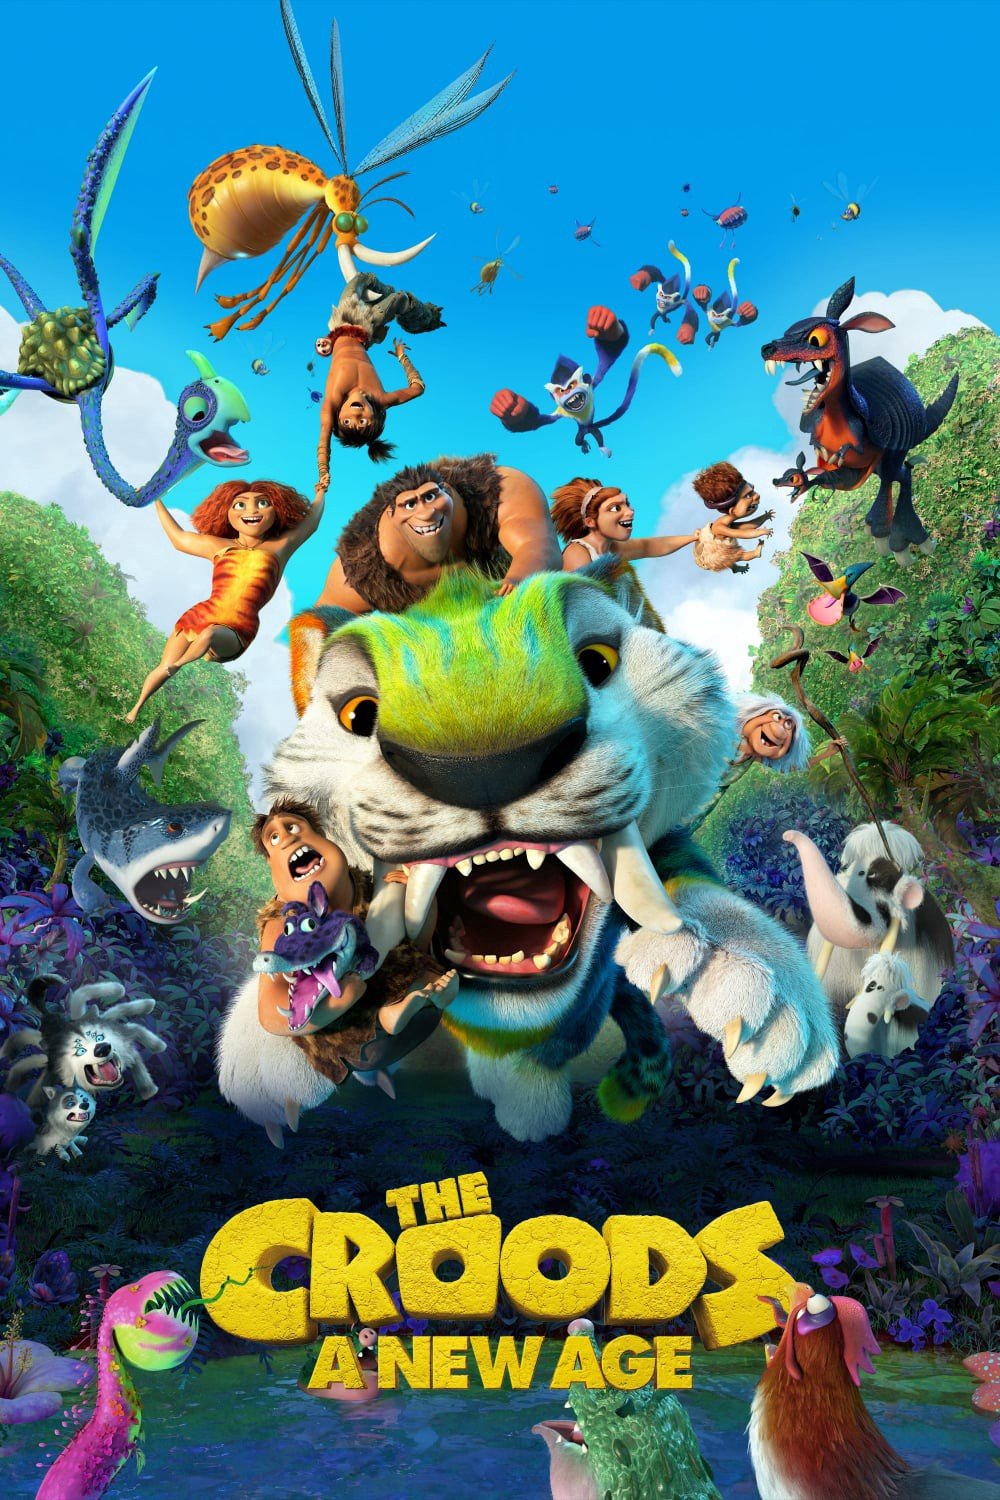 """EXCLUSIVE! — The Croods: A New Age 2020"""" FULL MOVIE WATCH"""" - (1080p) 